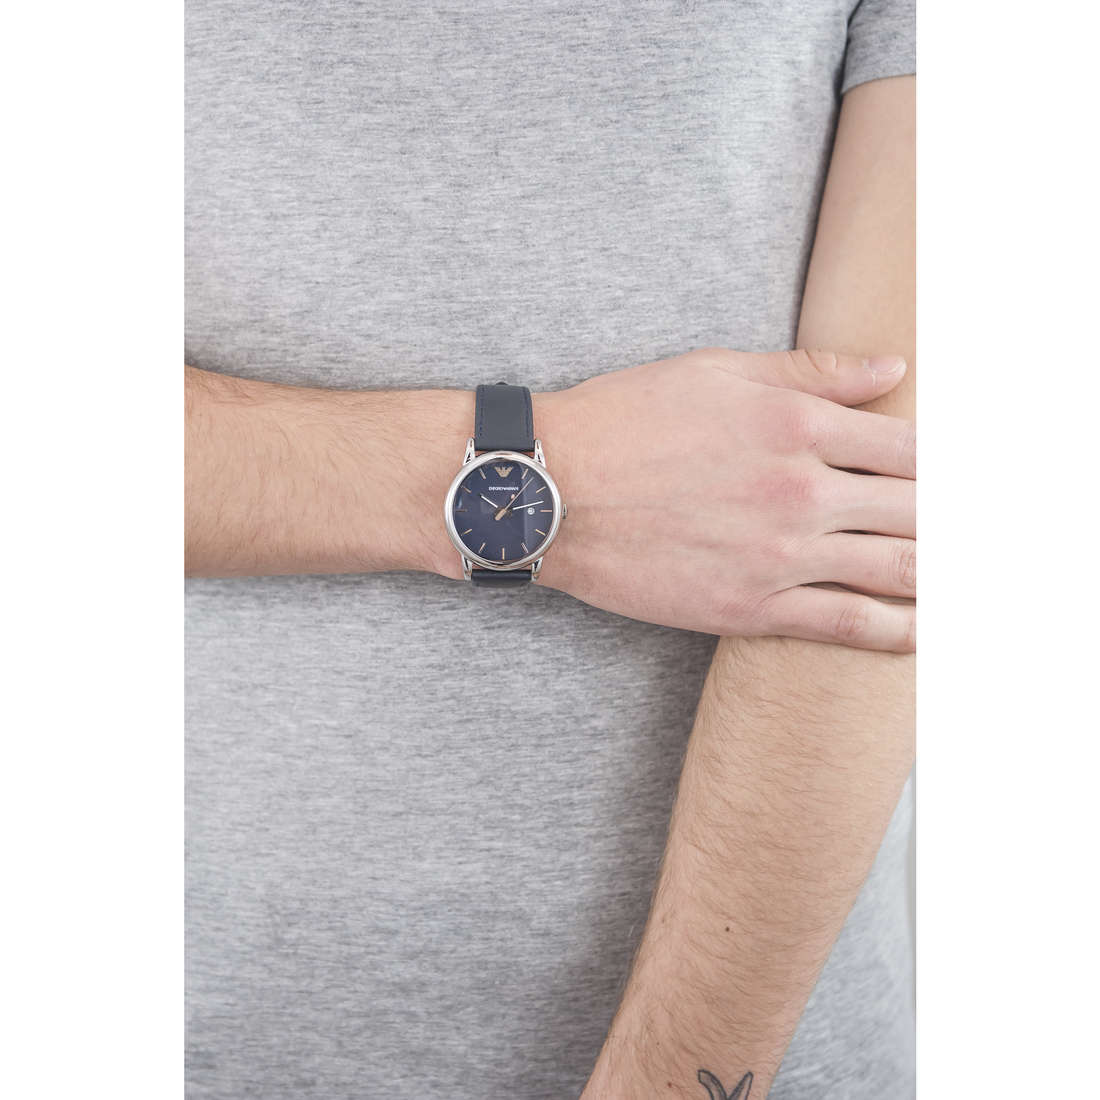 Emporio Armani only time Fall 2013 man AR1731 indosso